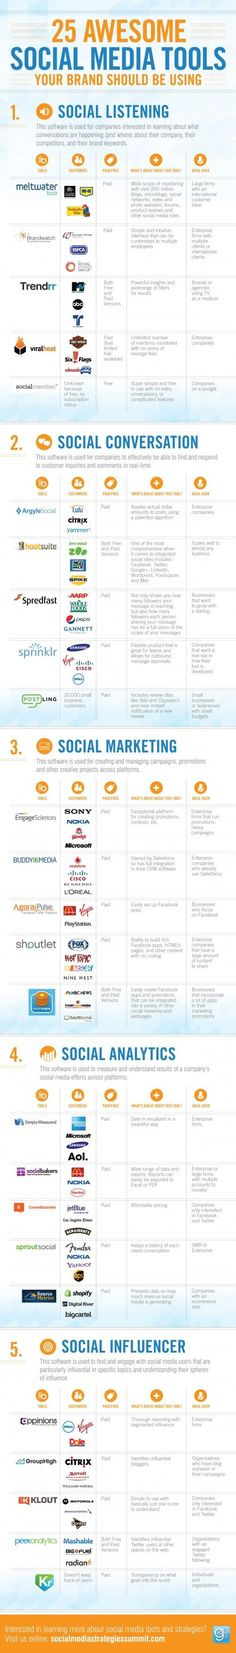 25 Great Social Media Tools for Business   #Infographic